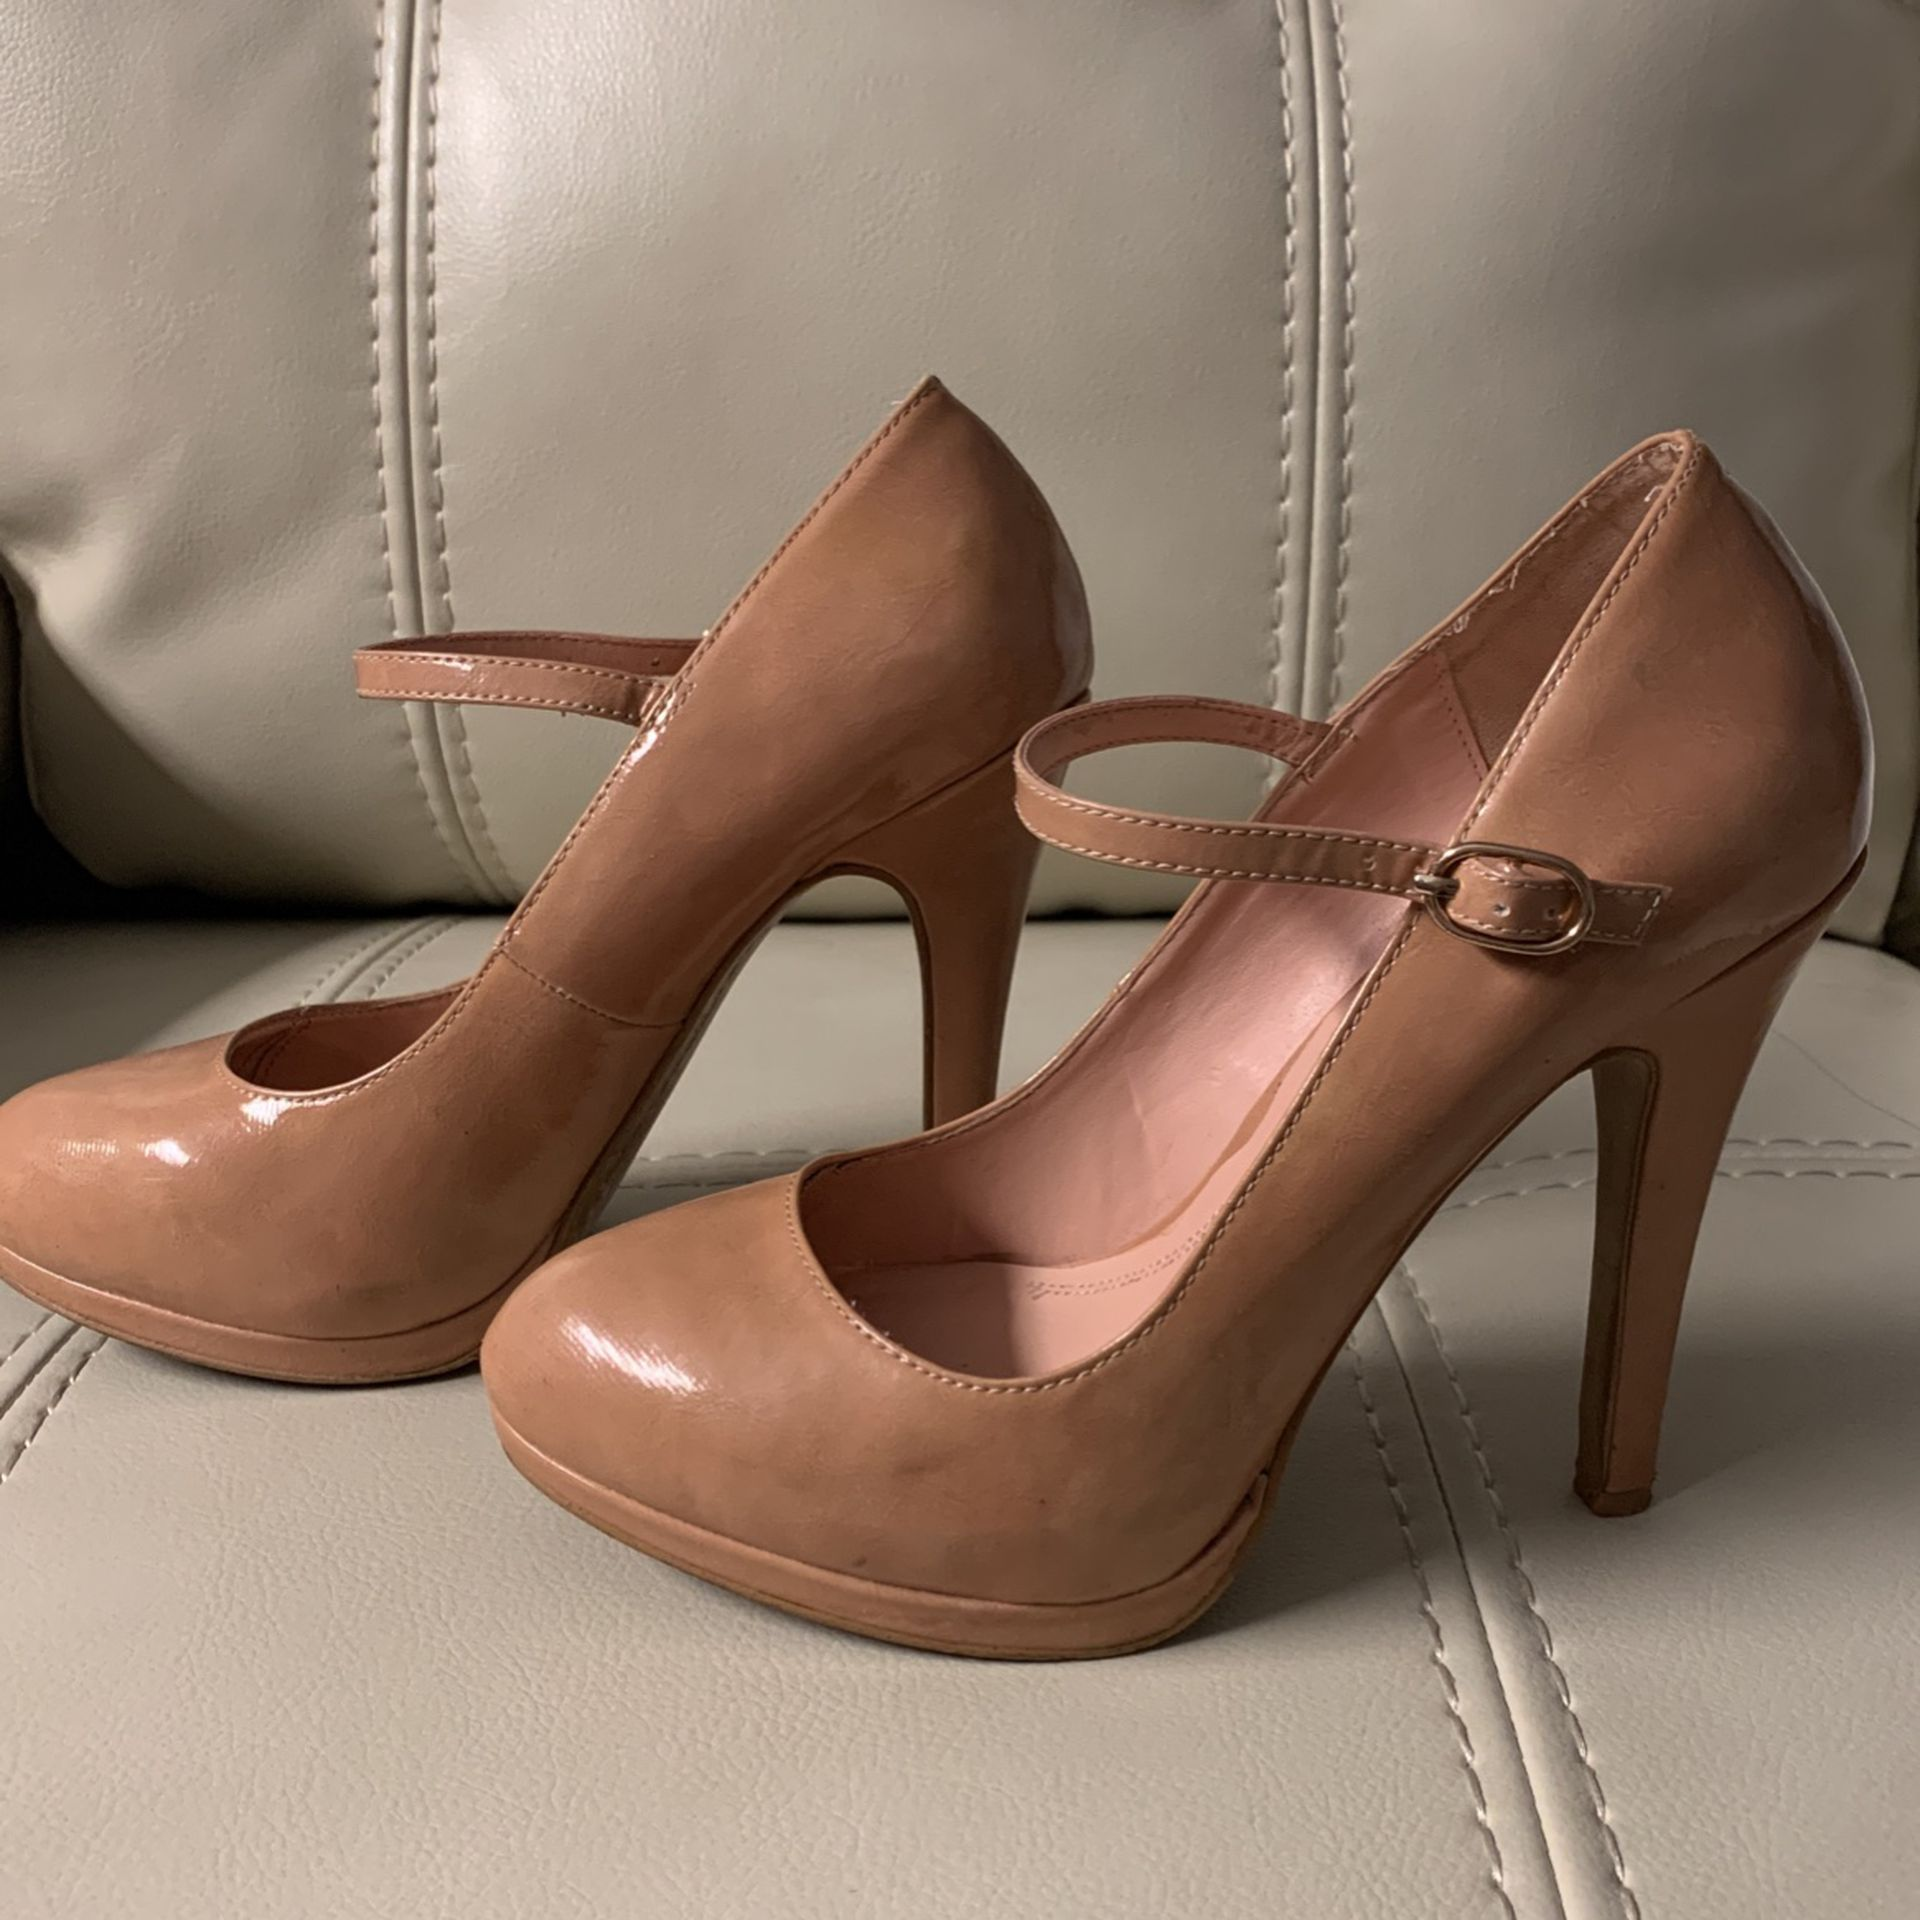 Shoes / Zapatos/ High Hills